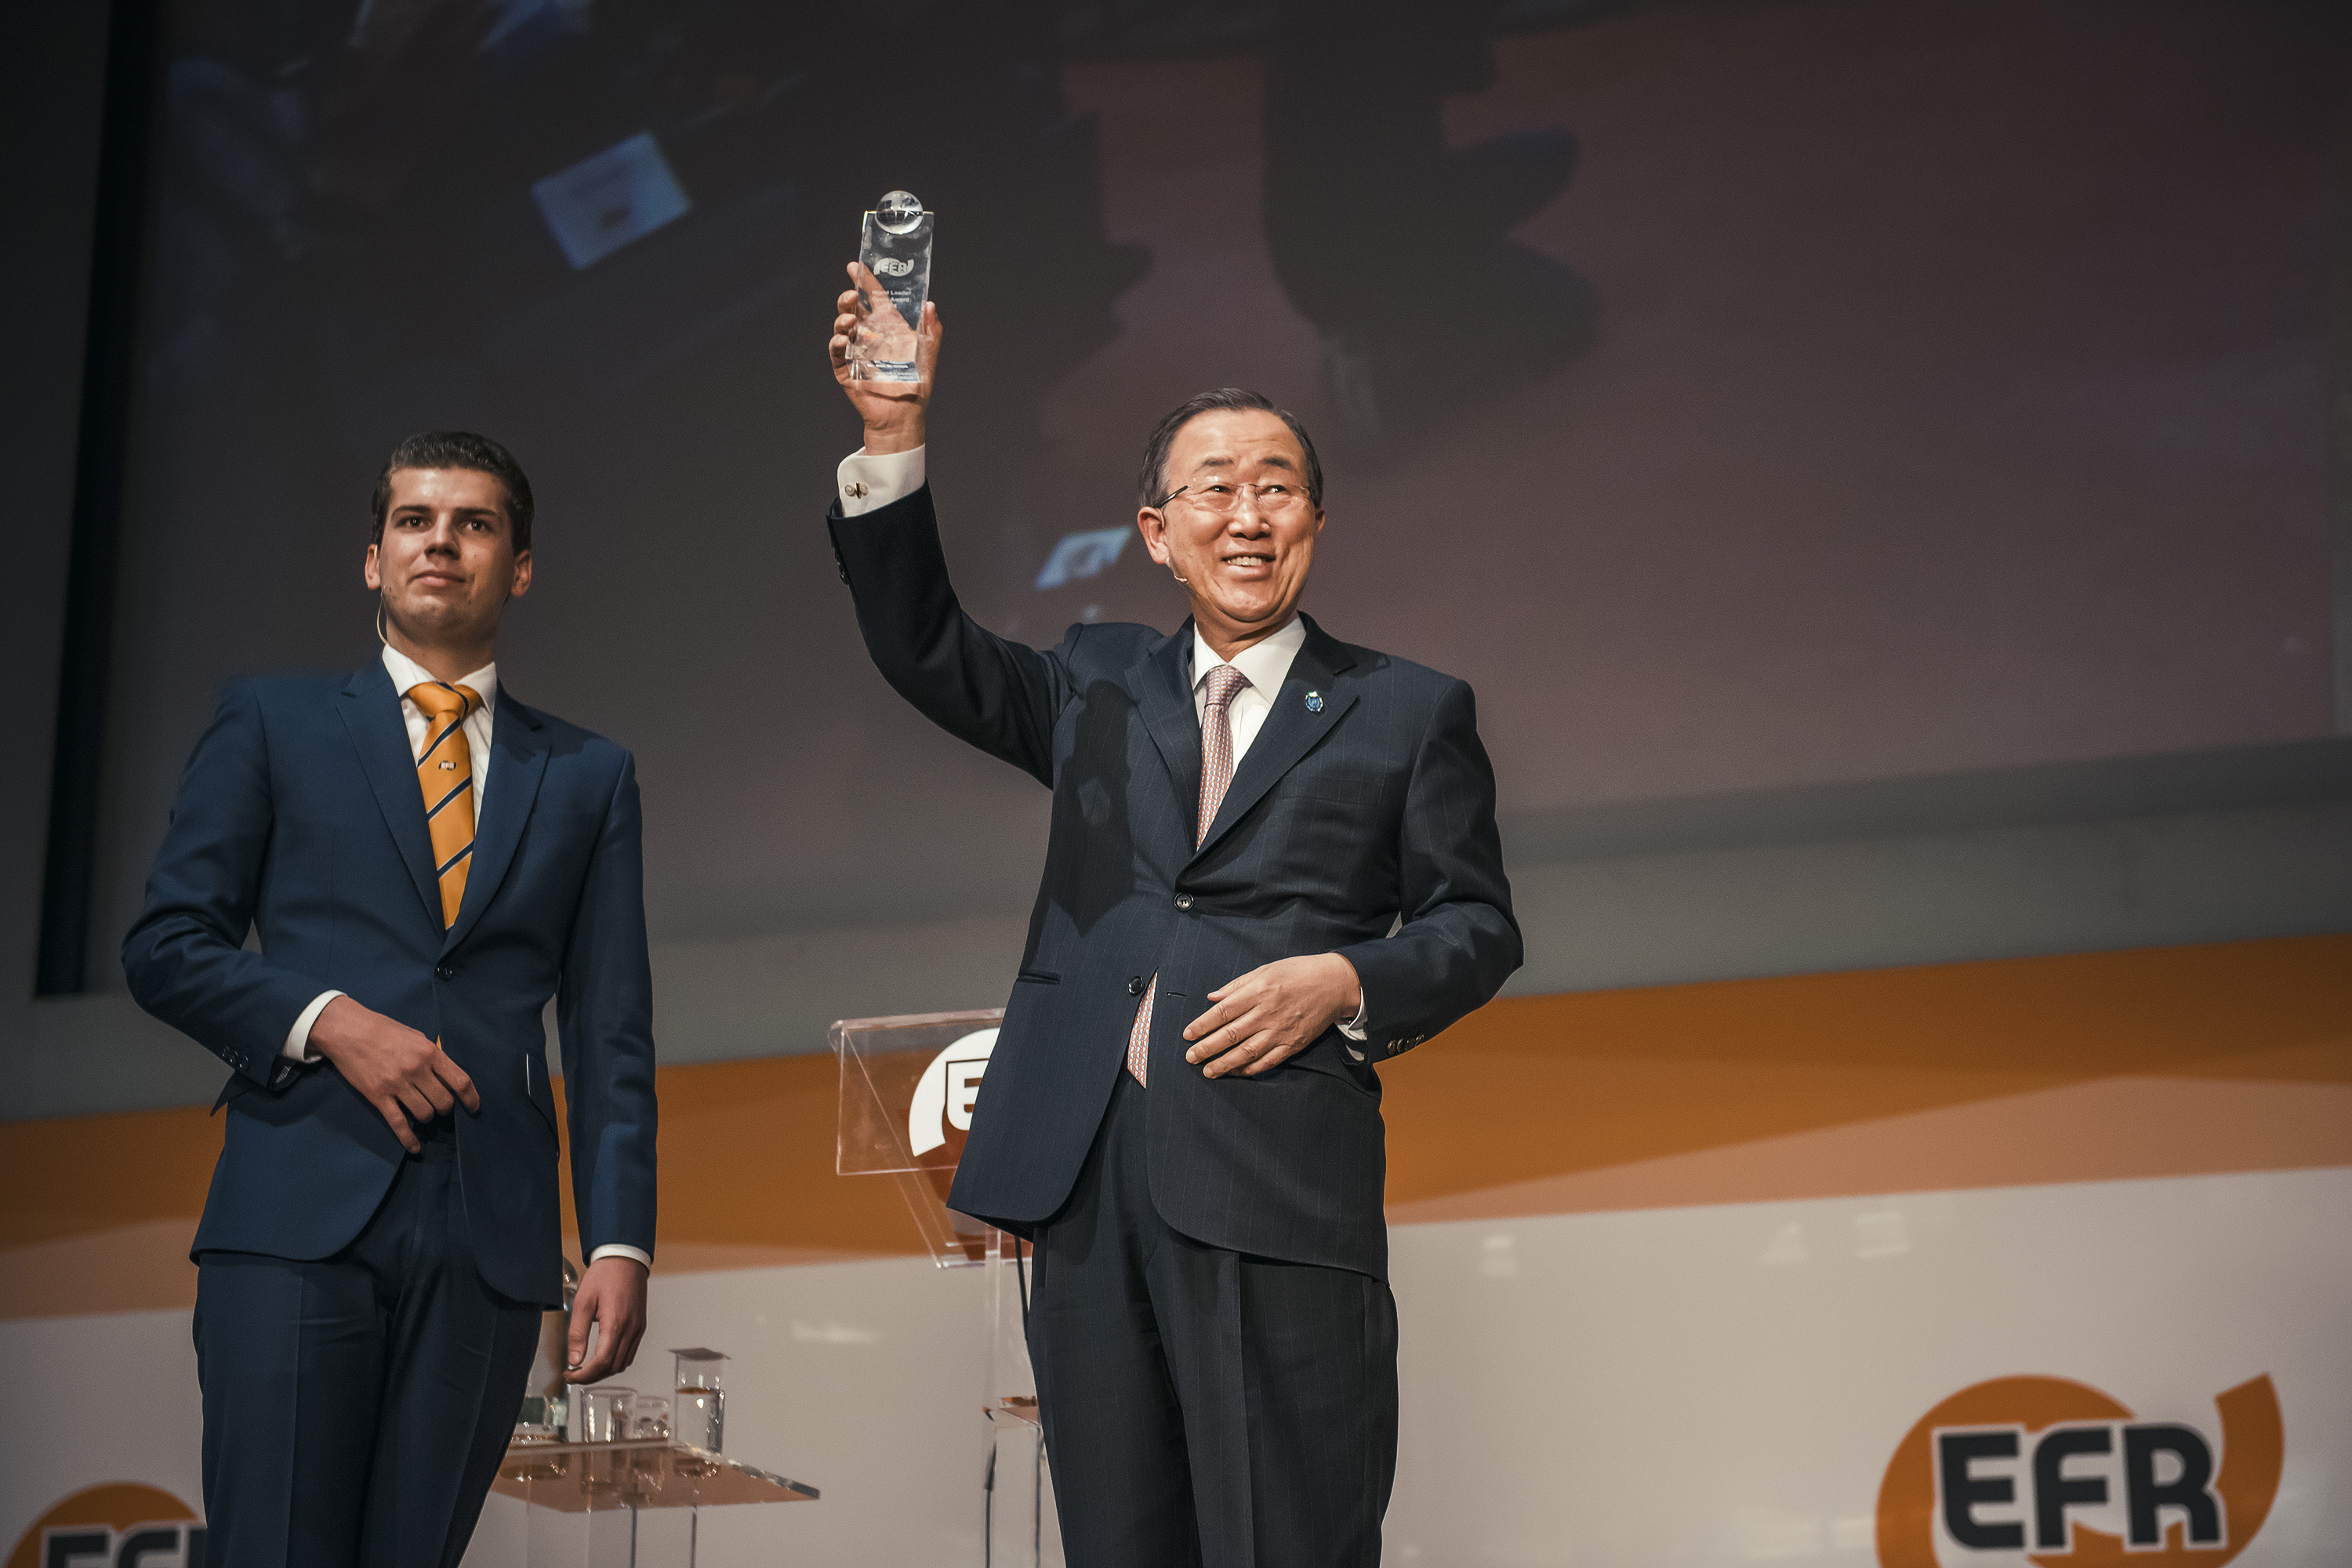 Ban Ki Moon World Leader Cycle Award